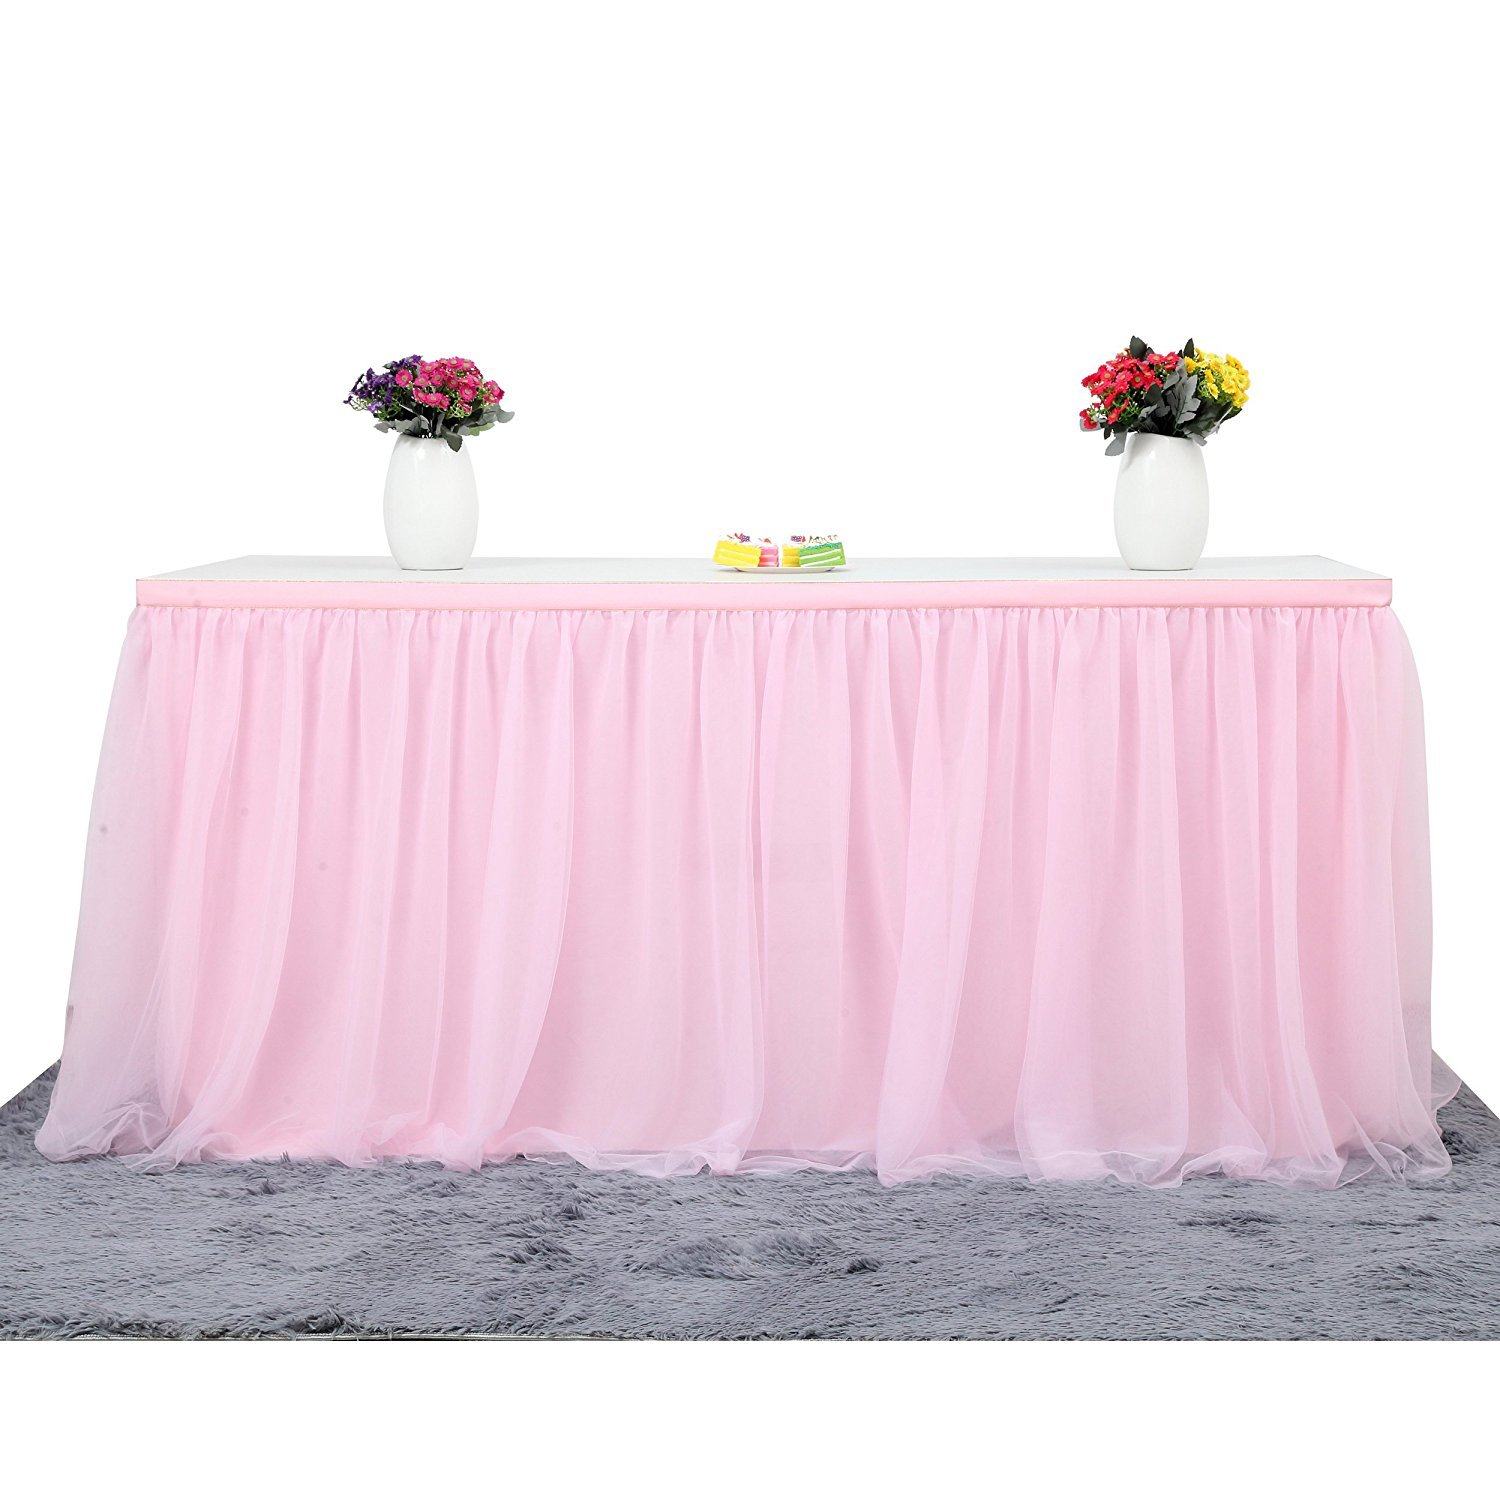 CHIGER Tulle Table Skirt High-end Gold Brim Mesh Fluffy 3 yards Tutu Table Skirt For Party,Wedding,Birthday Party&Home Decoration (9FT X 0.8M, Pink)